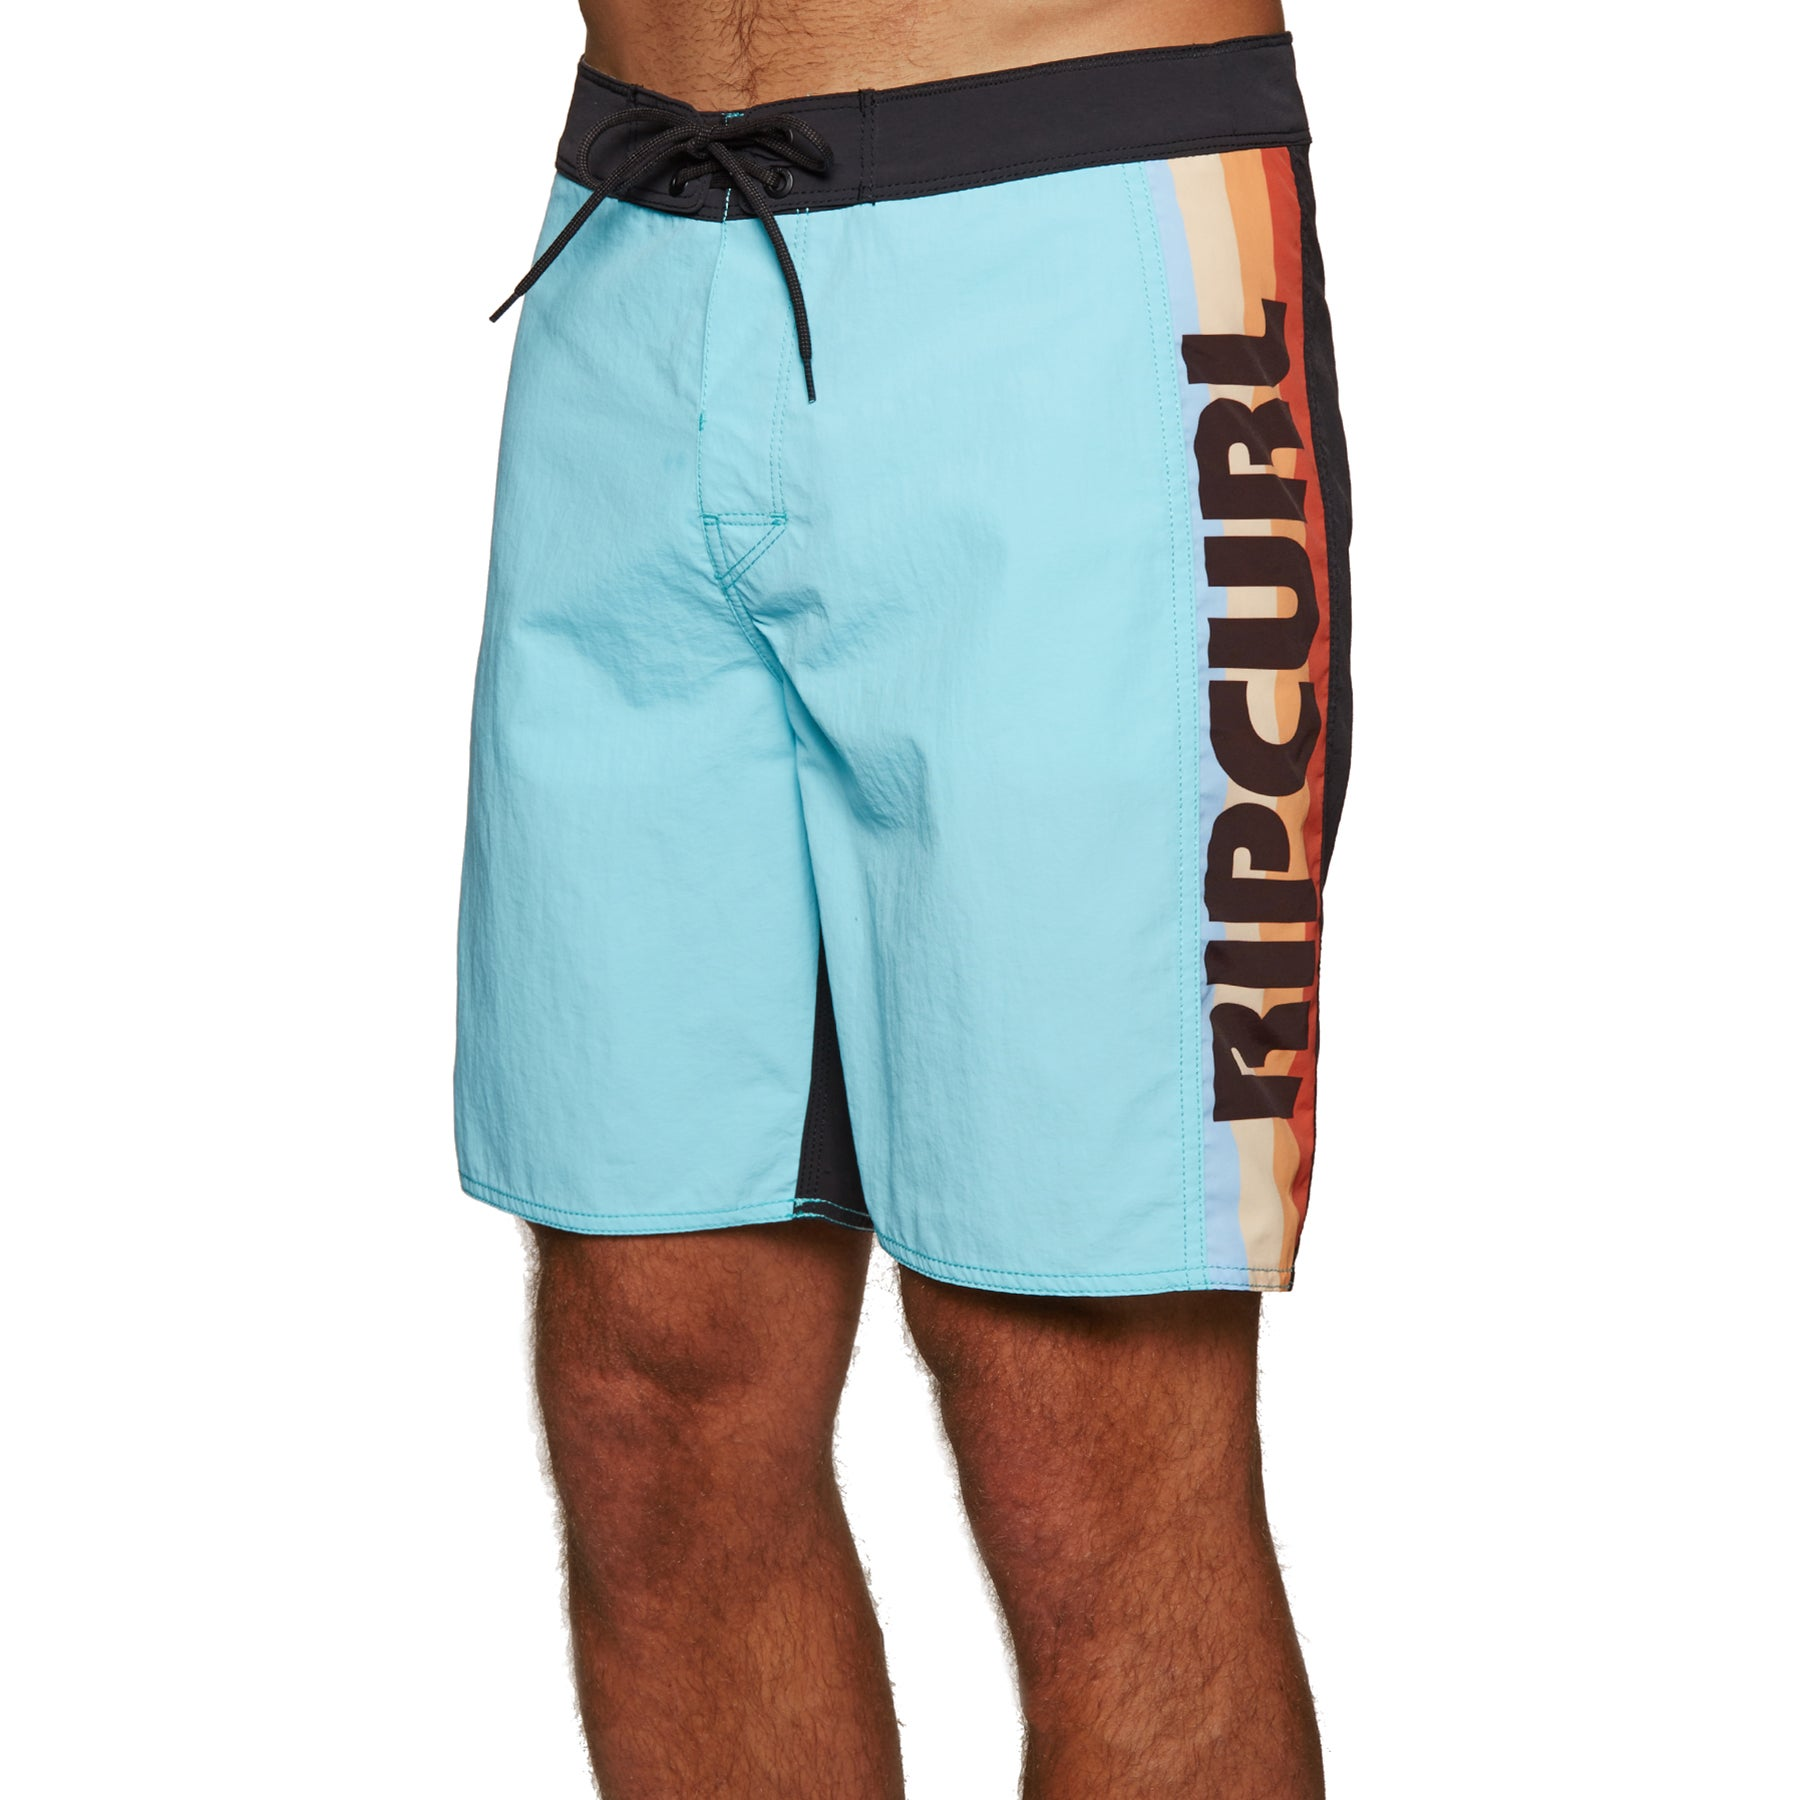 Rip Curl Switch 19in Boardshorts - Light Blue